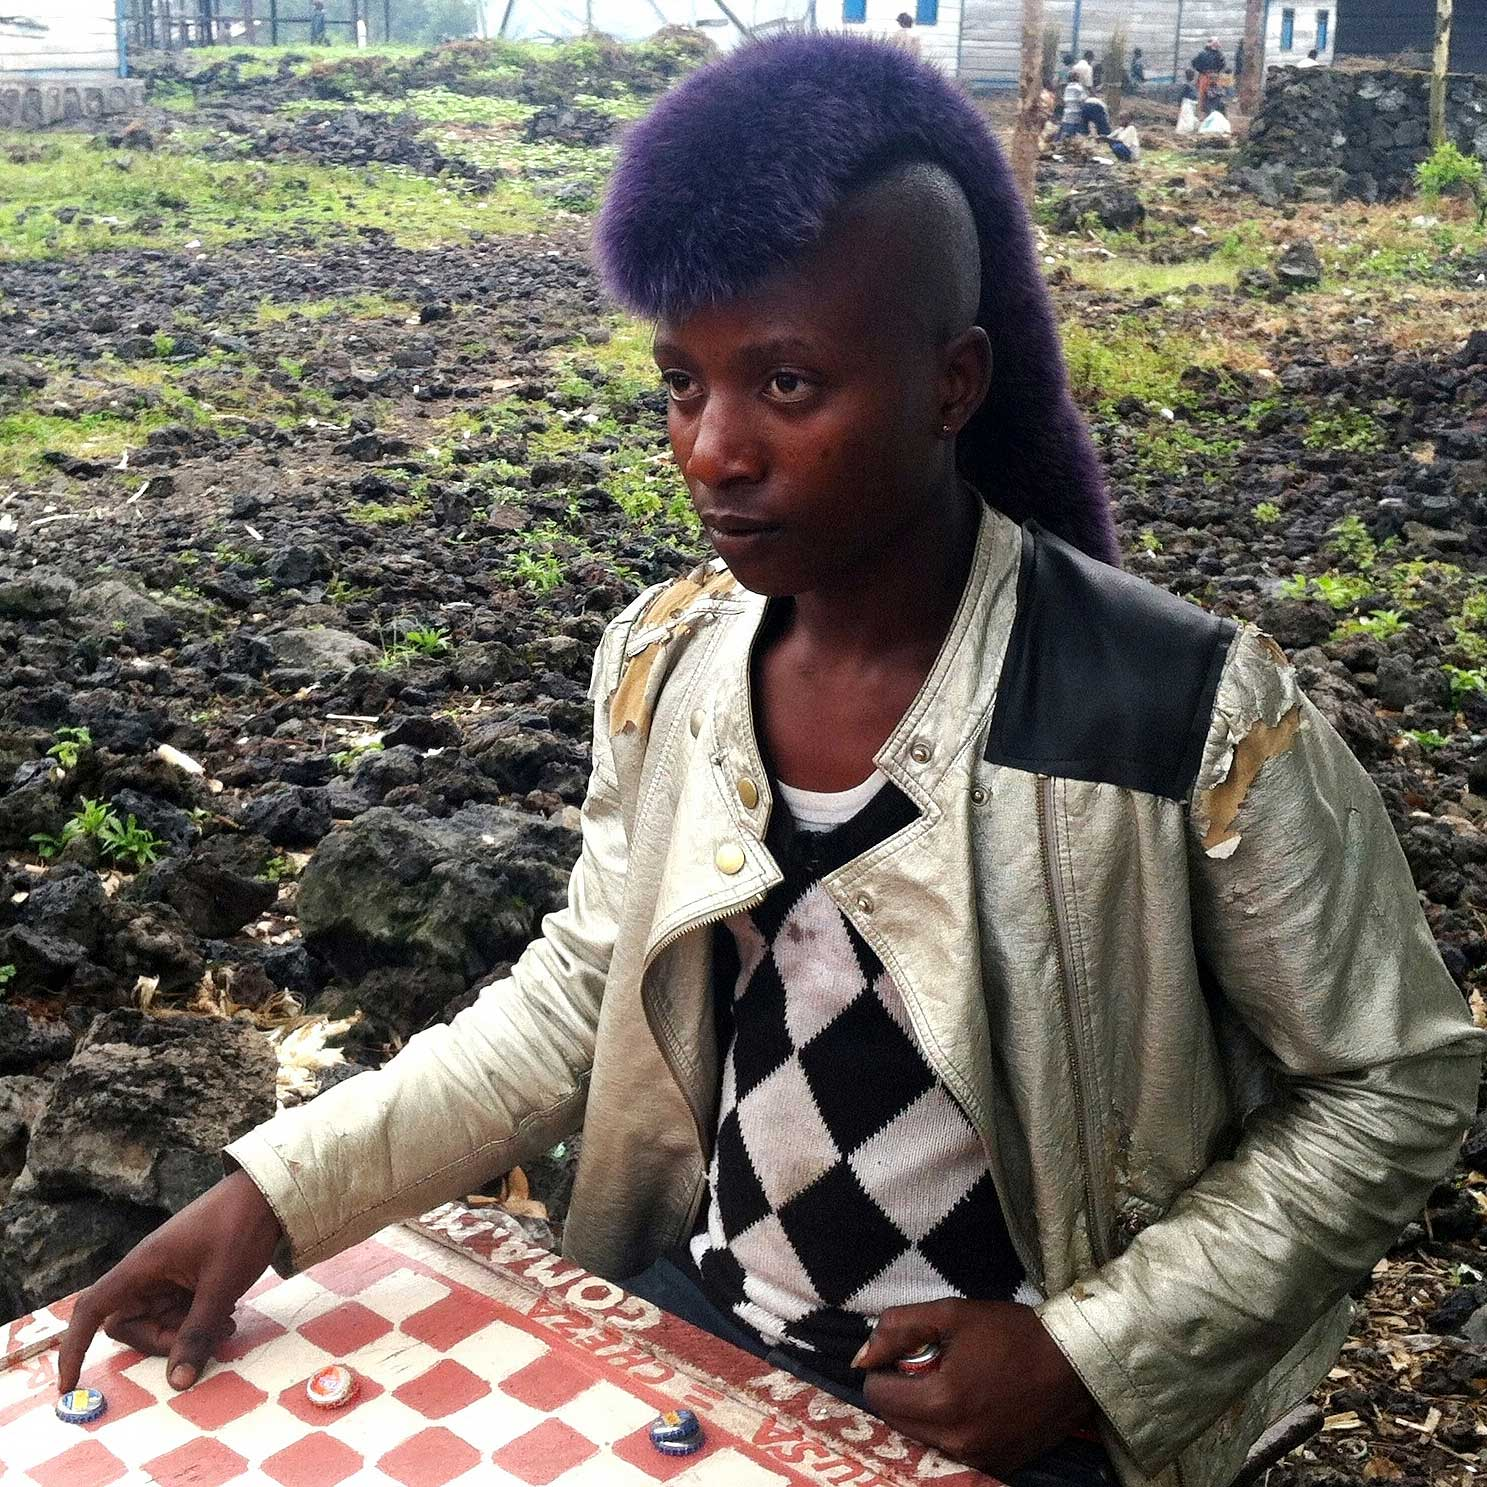 A young Congolese refugee in Goma, Democratic Republic of the Congo. I was impressed by the look of her hair. @leyuwera1